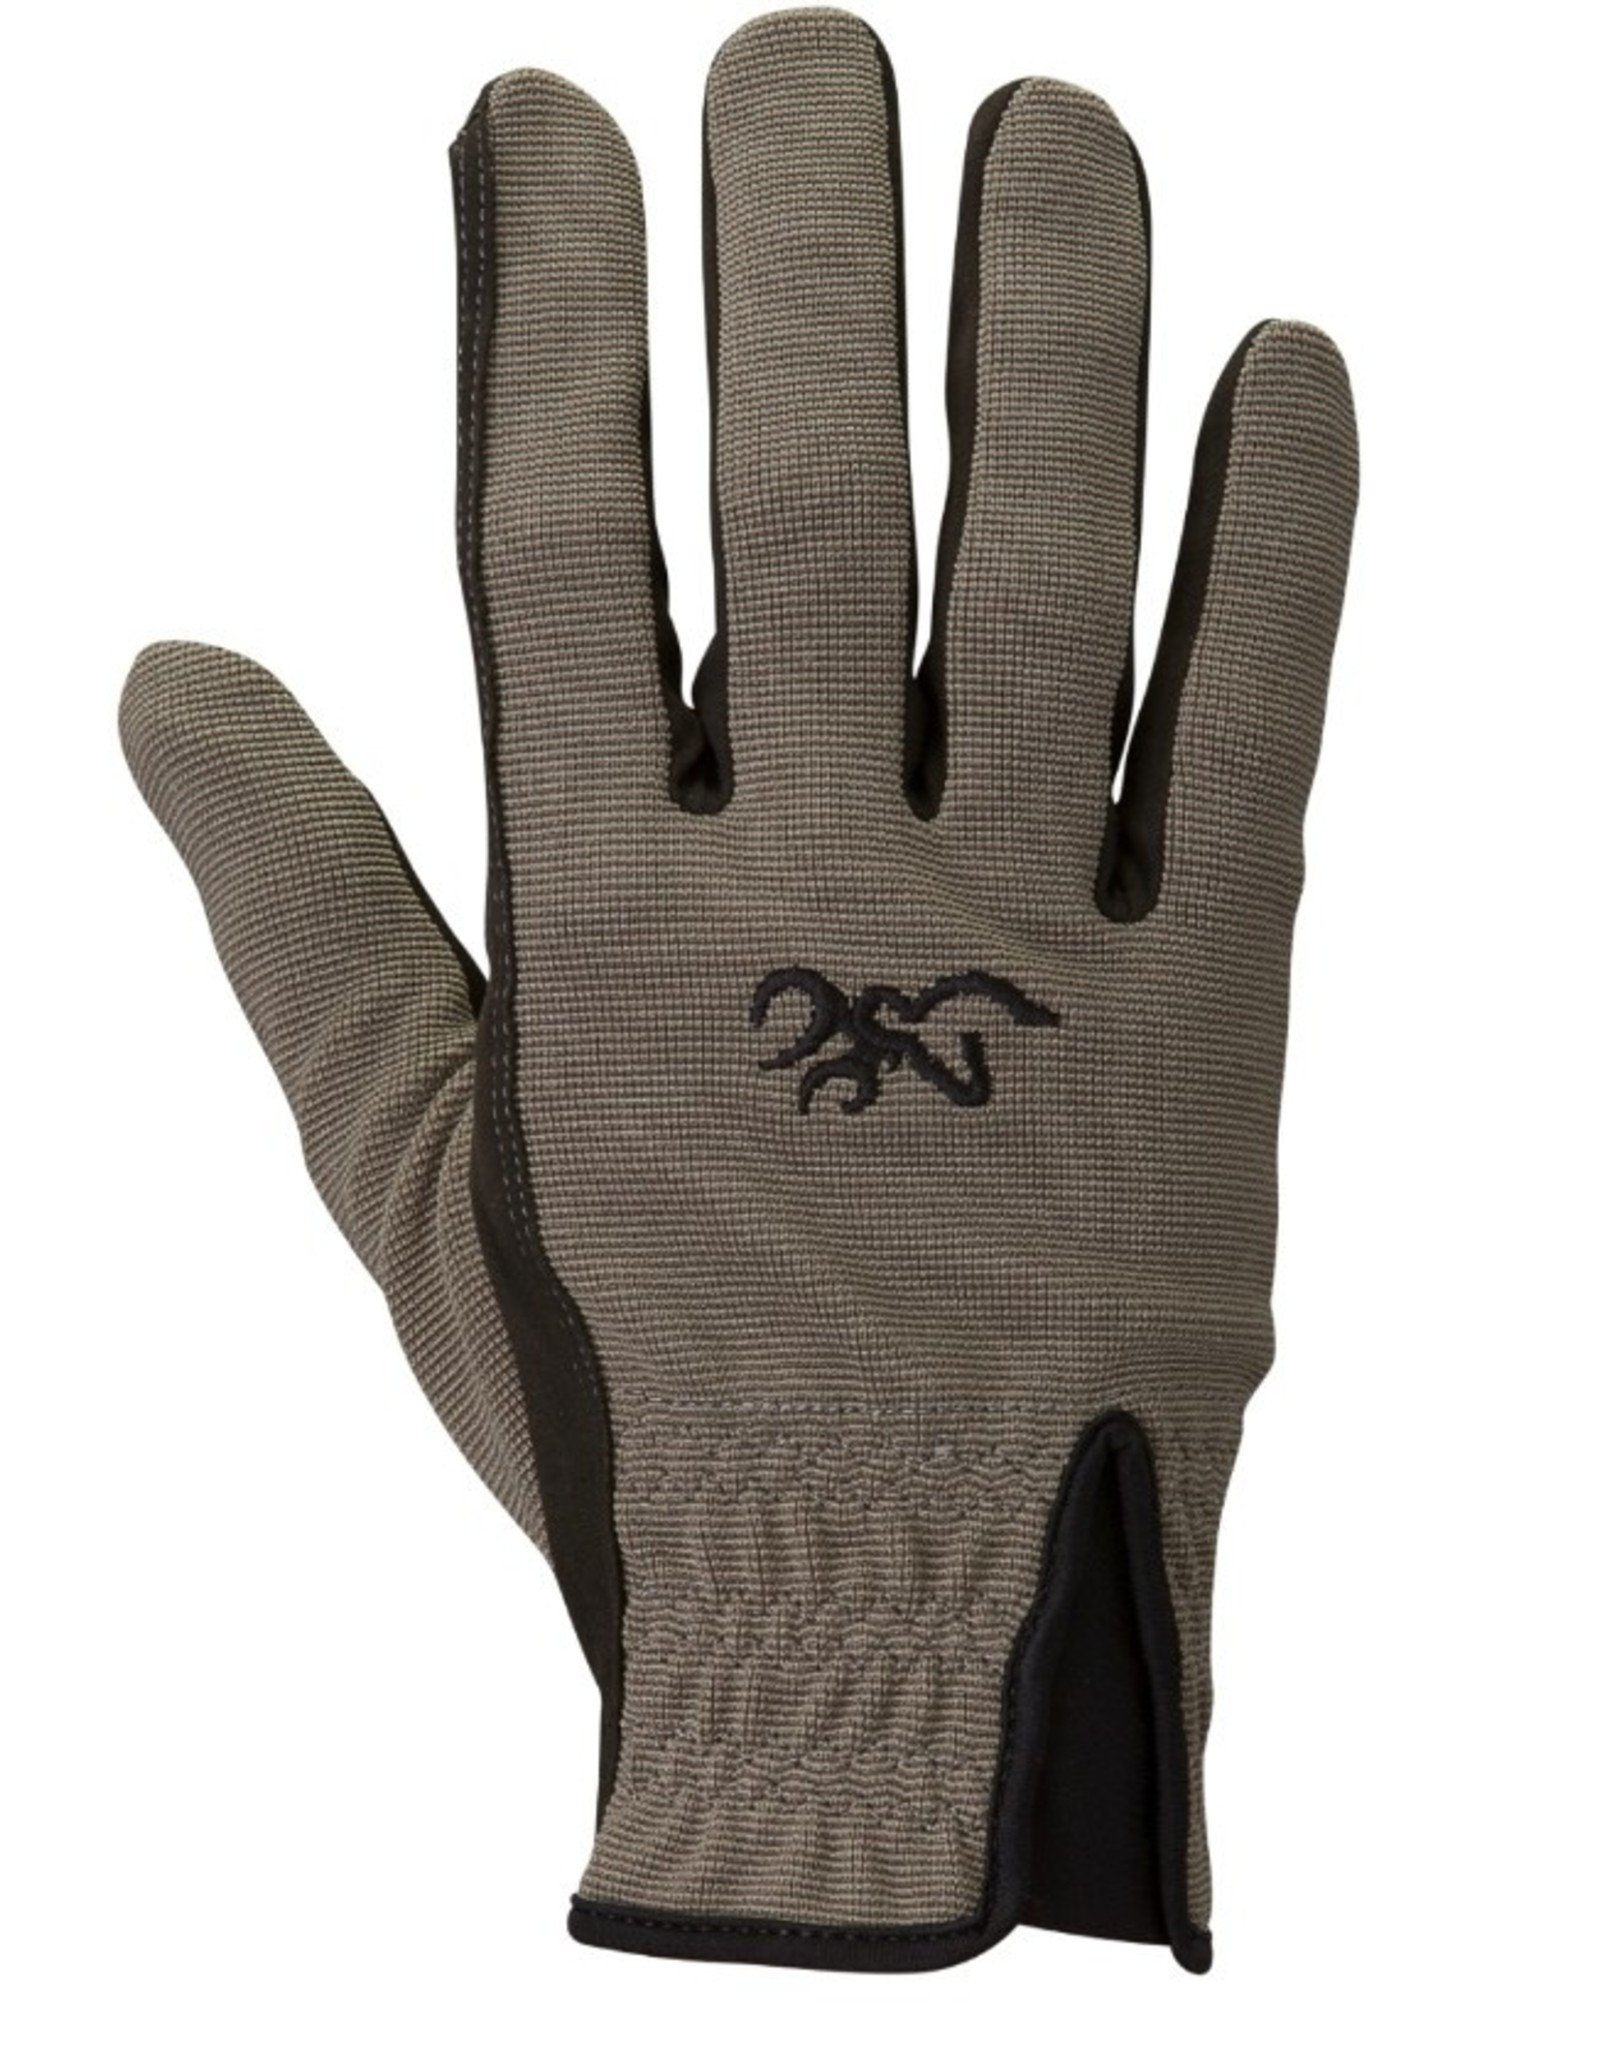 Browning Browning Trapper Creek Shooting Glove - XL